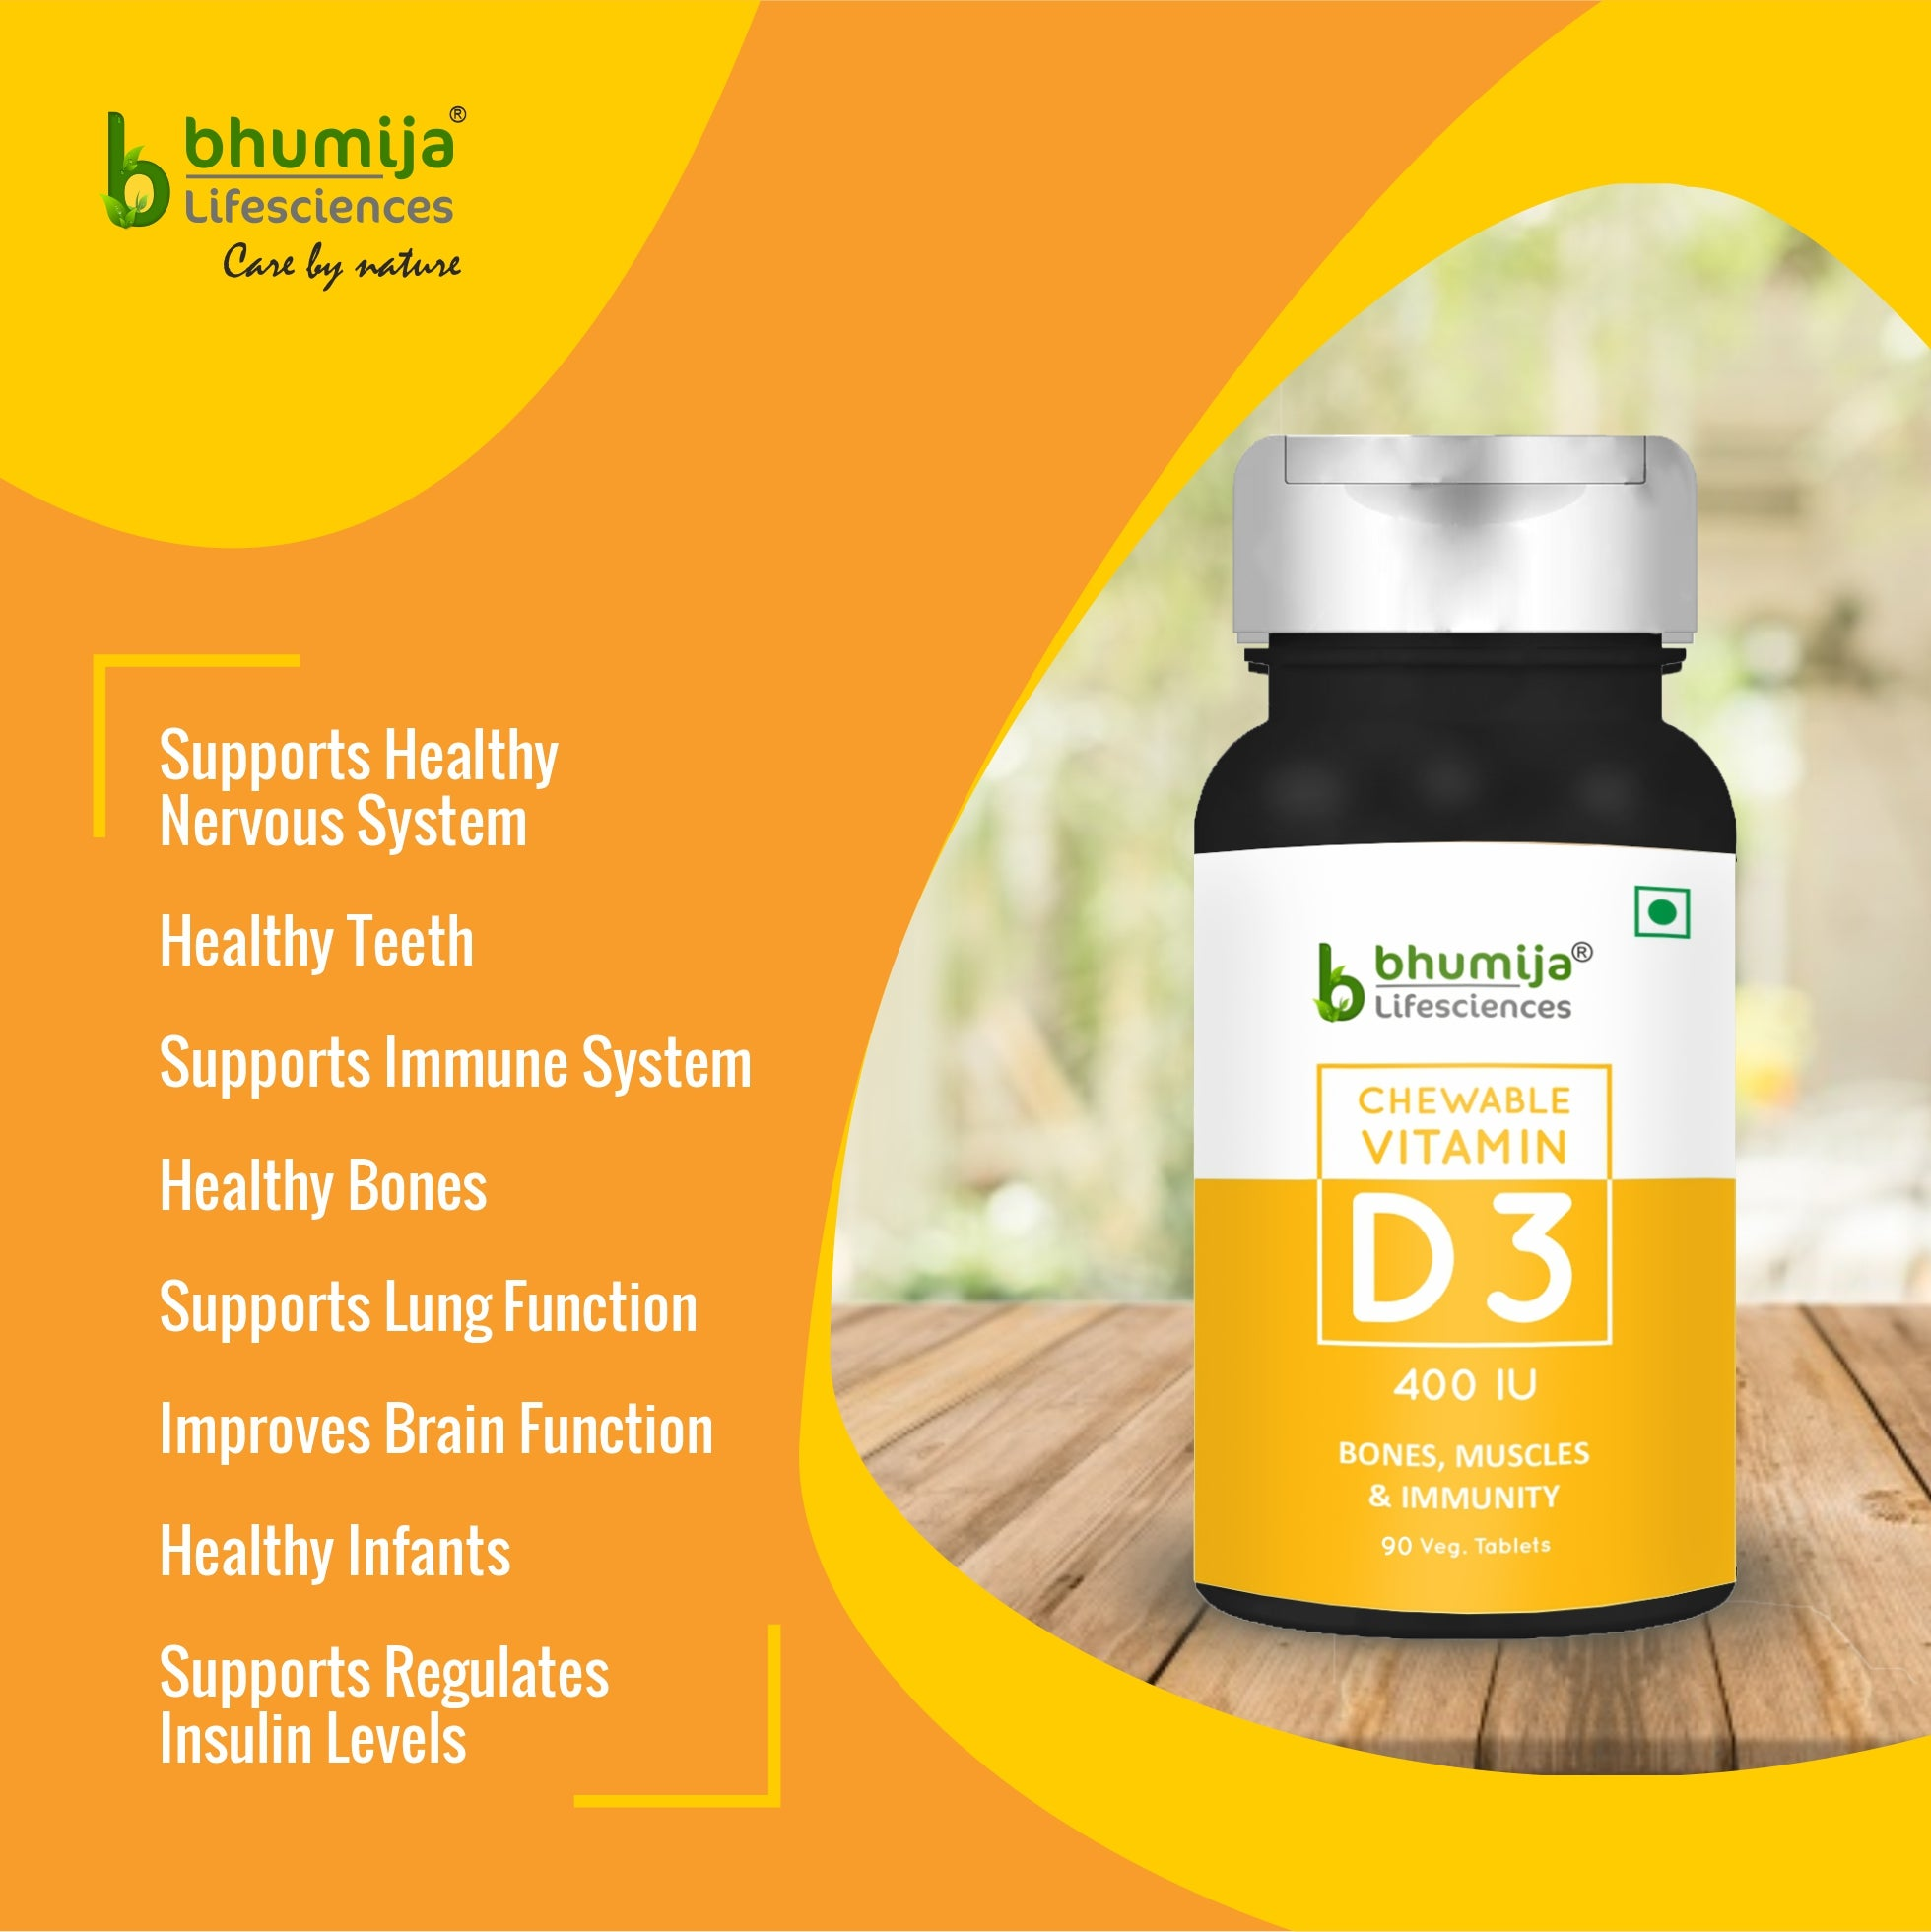 Bhumija Lifesciences Vitamin D3 Chewable Tablets for Stronger Bones and Immunity